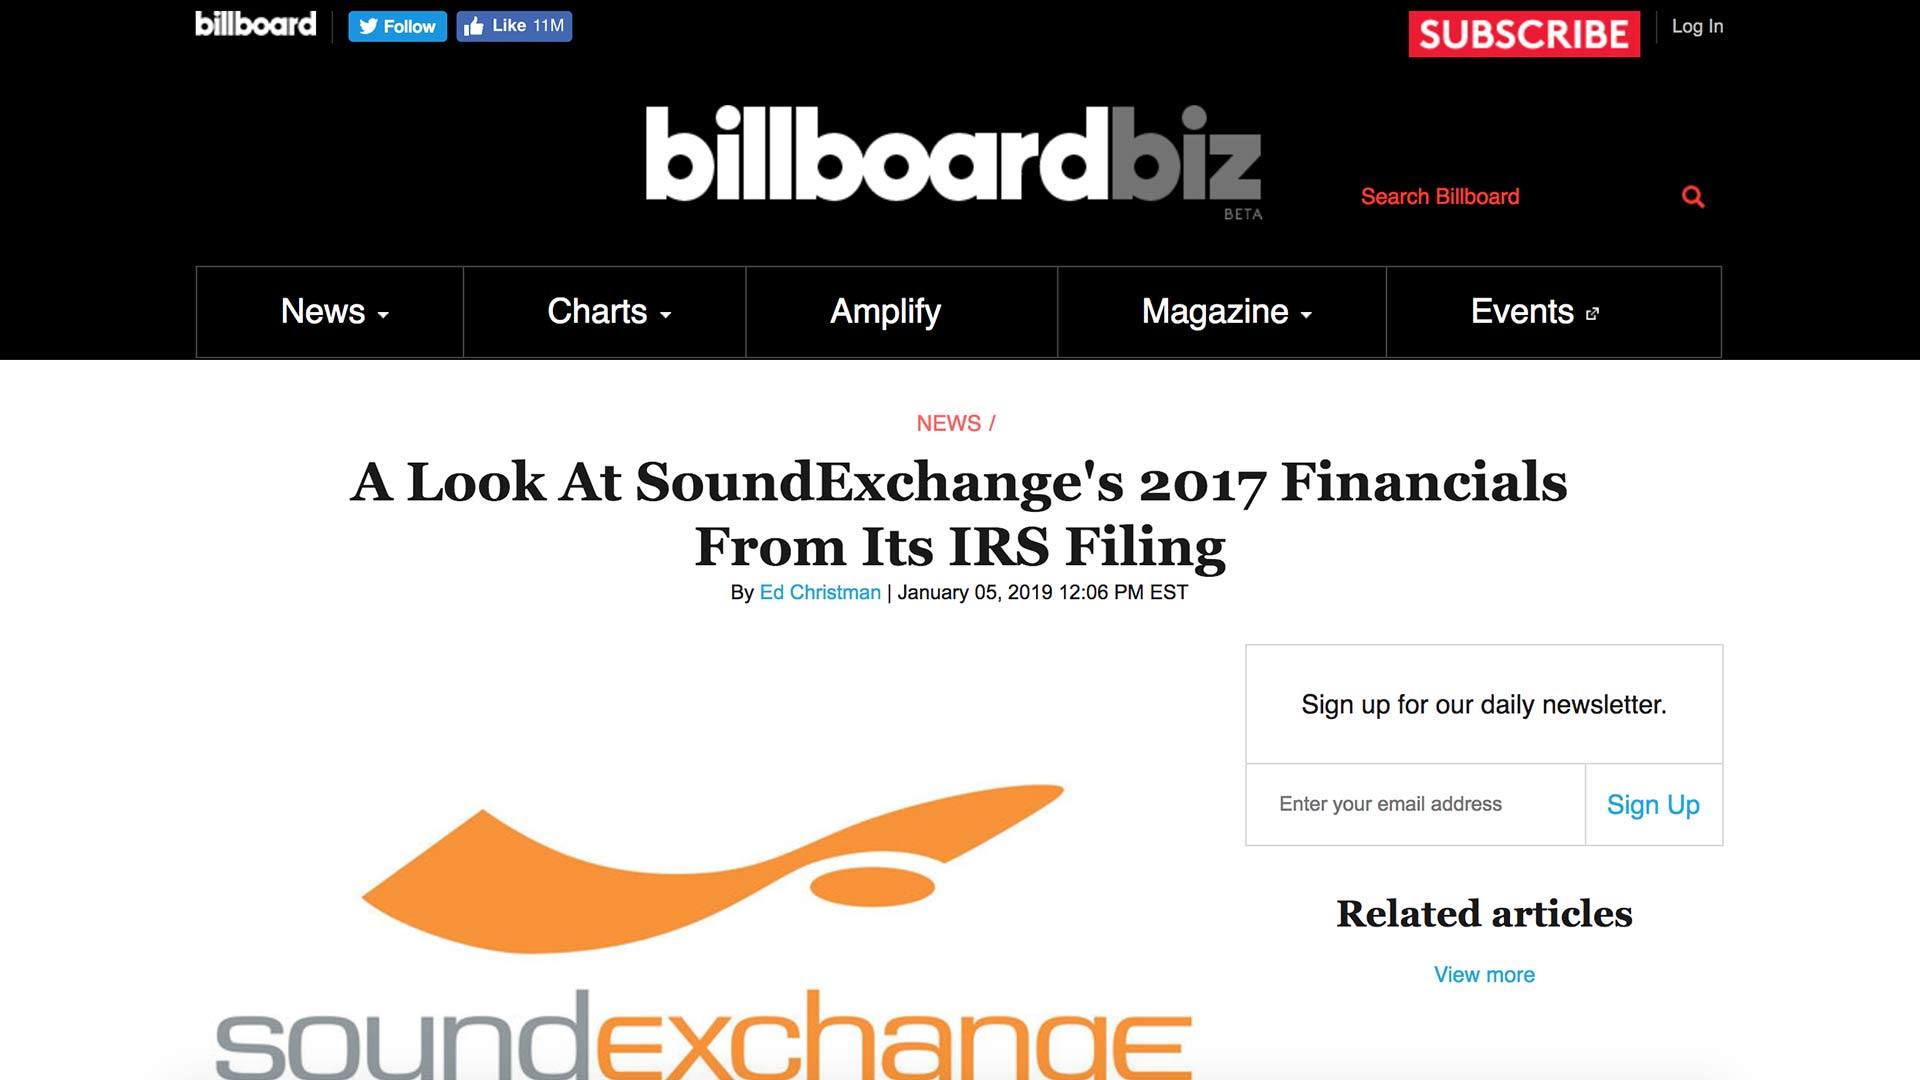 Fairness Rocks News A Look At SoundExchange's 2017 Financials From Its IRS Filing